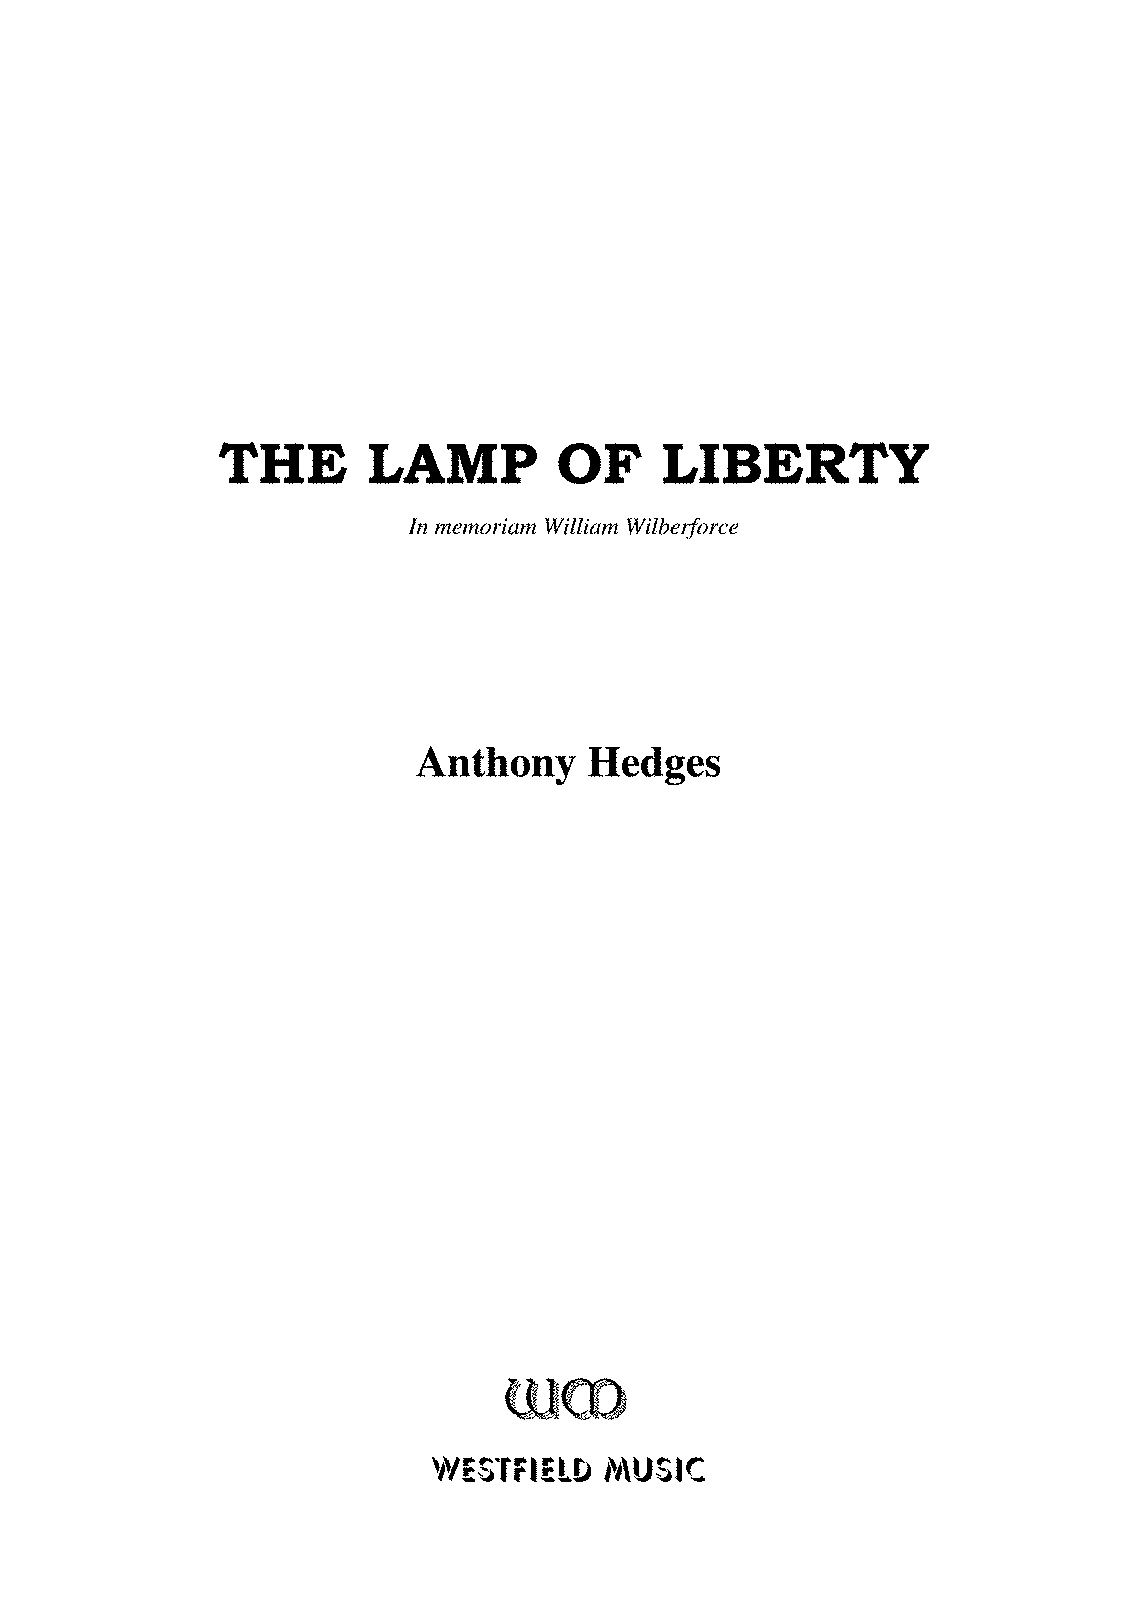 PMLP99284-The Lamp of Liberty op.155.pdf